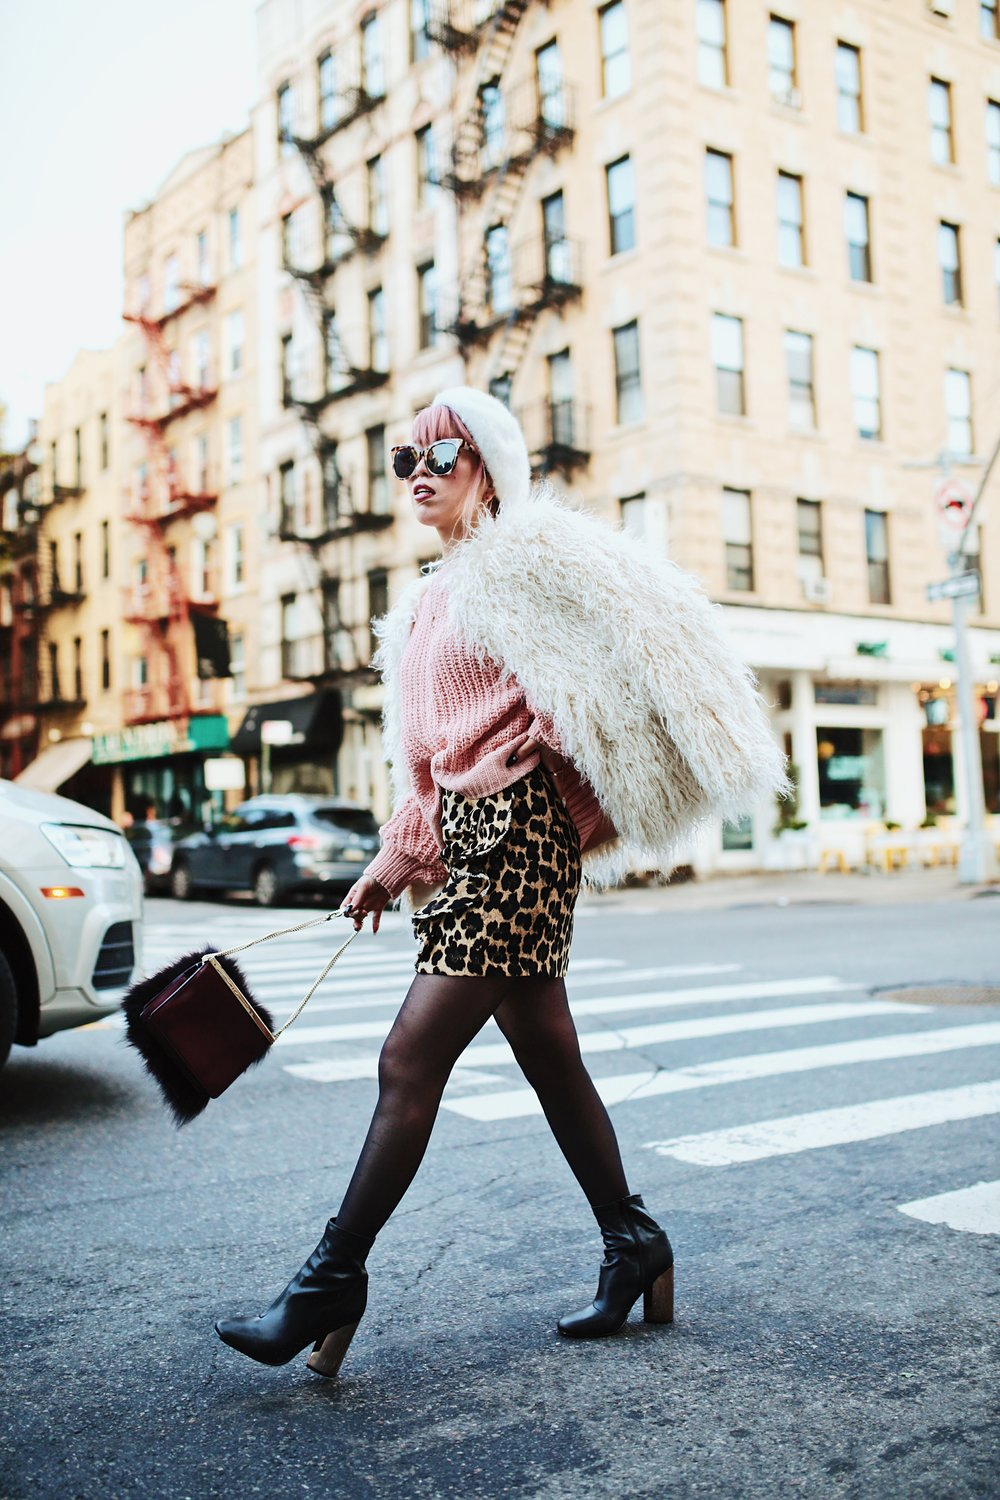 H&M Pink Sweater-Zara leopar prins mini skirt-H&M white shaggy coat-DVF fur bag-anthropologie white beret-Urban Outfitters Sunglasses-ALDO Ankle Boots-Mango Earrings-Aikas Love Closet-New York City-Pink Hair-Style Fashion Blogger-Seattle-Japanese_Petite fashion blogger 4